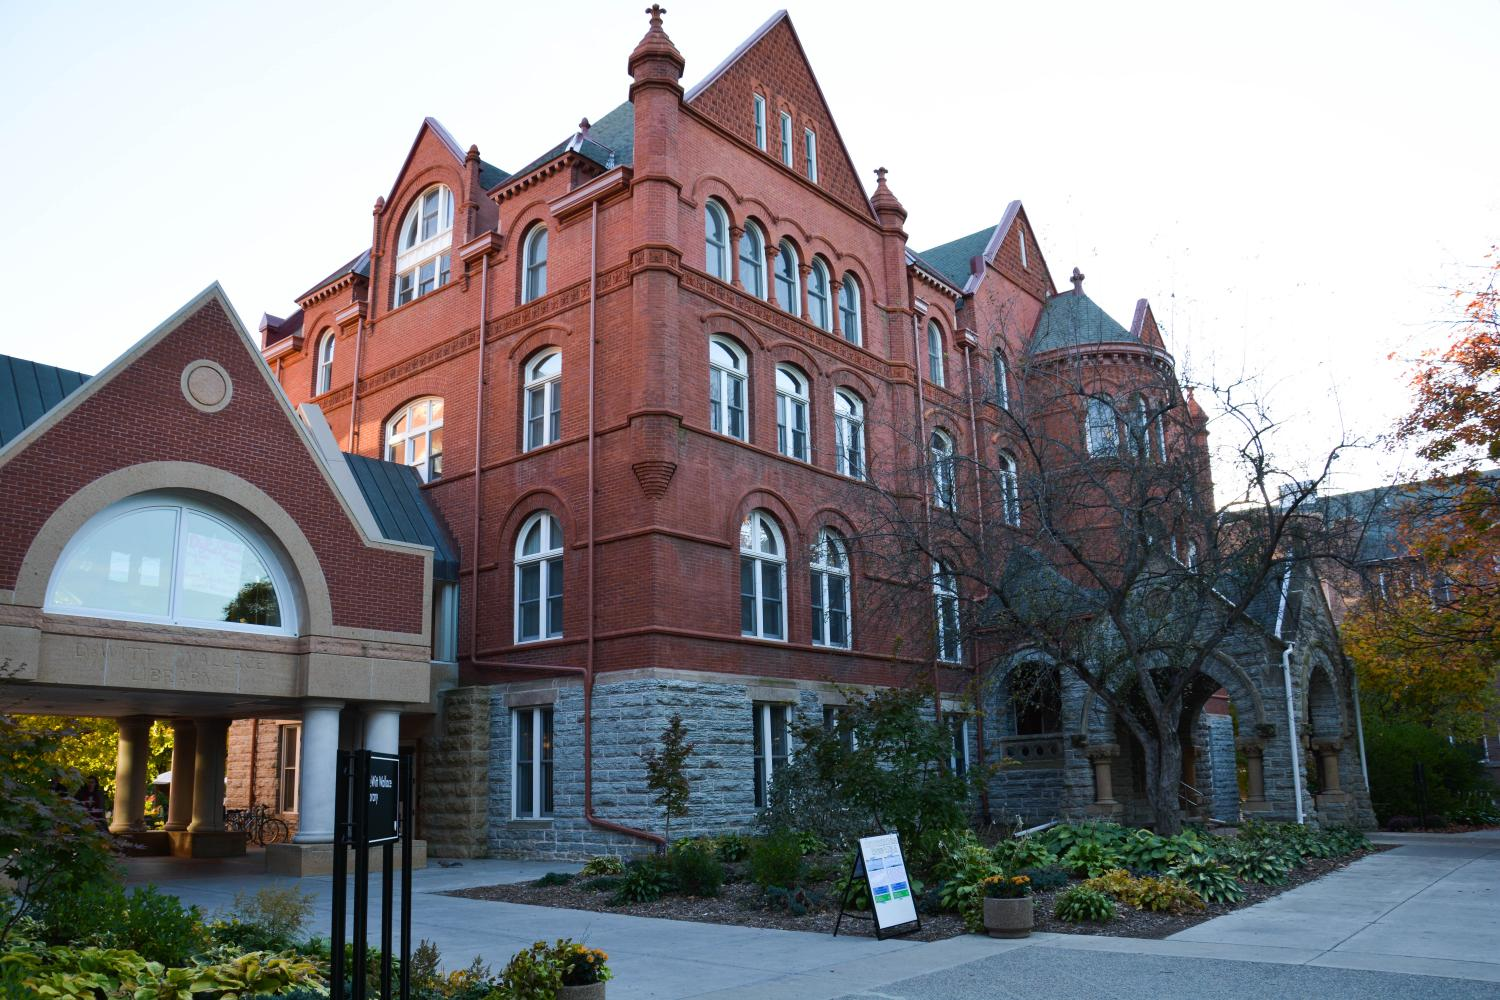 After 10 or more college visits, buildings like this one start to all look the same.